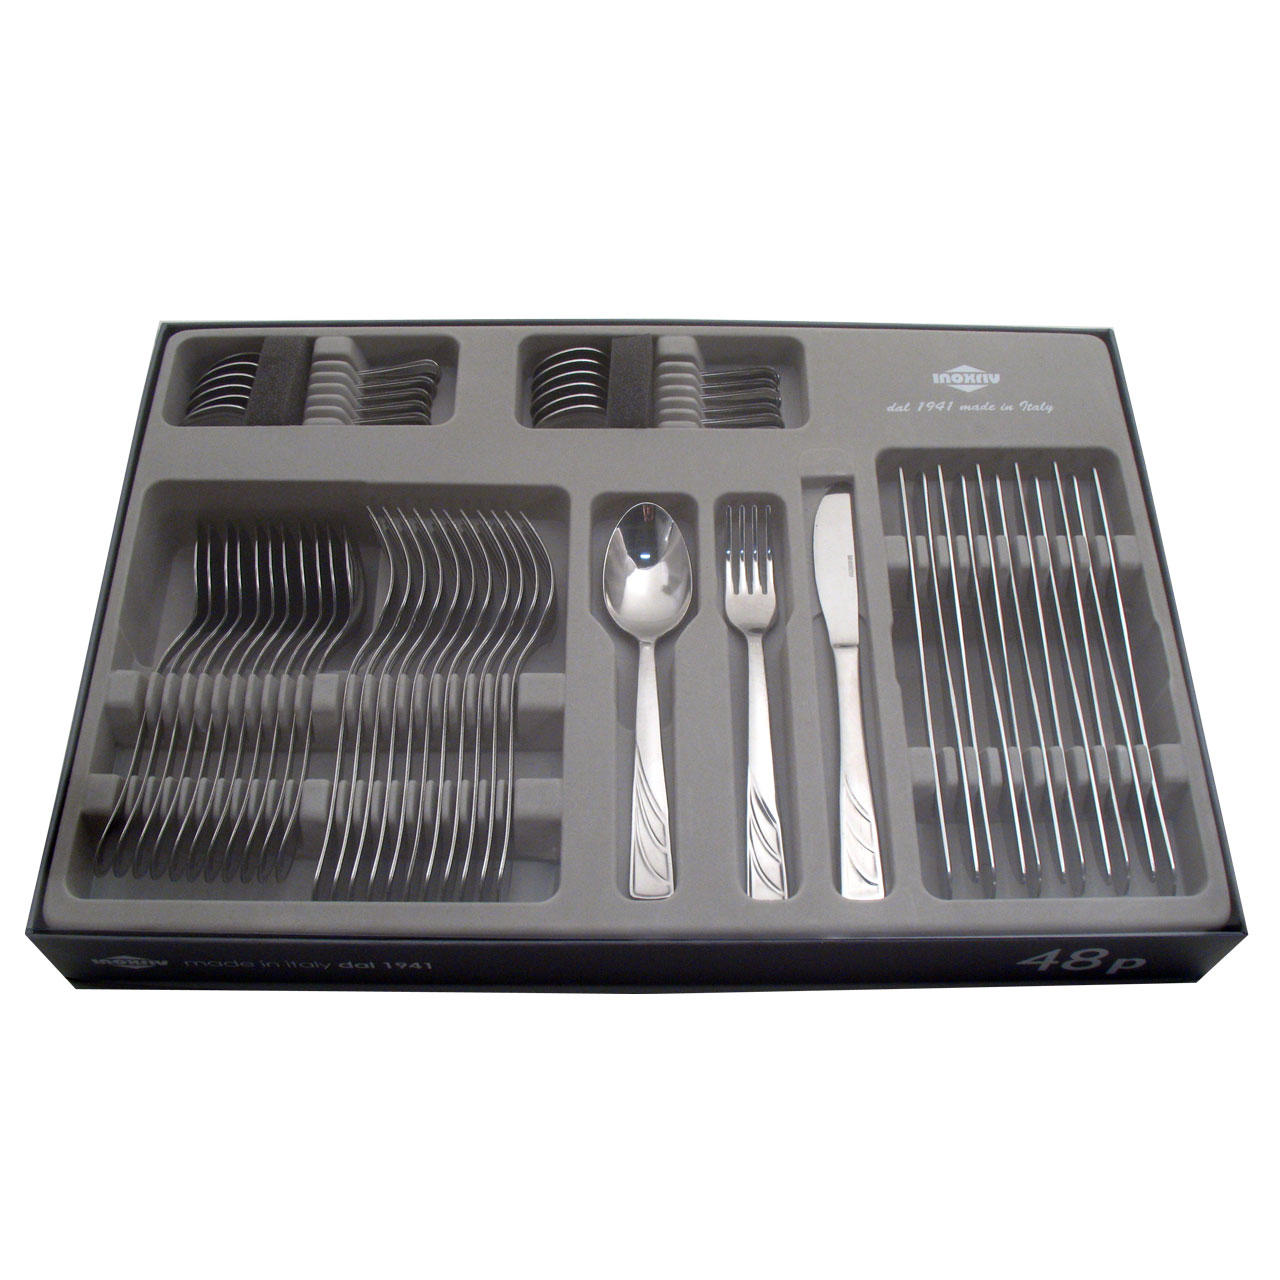 67320048 48 pcs. cutlery set pressed knife Design Window Box